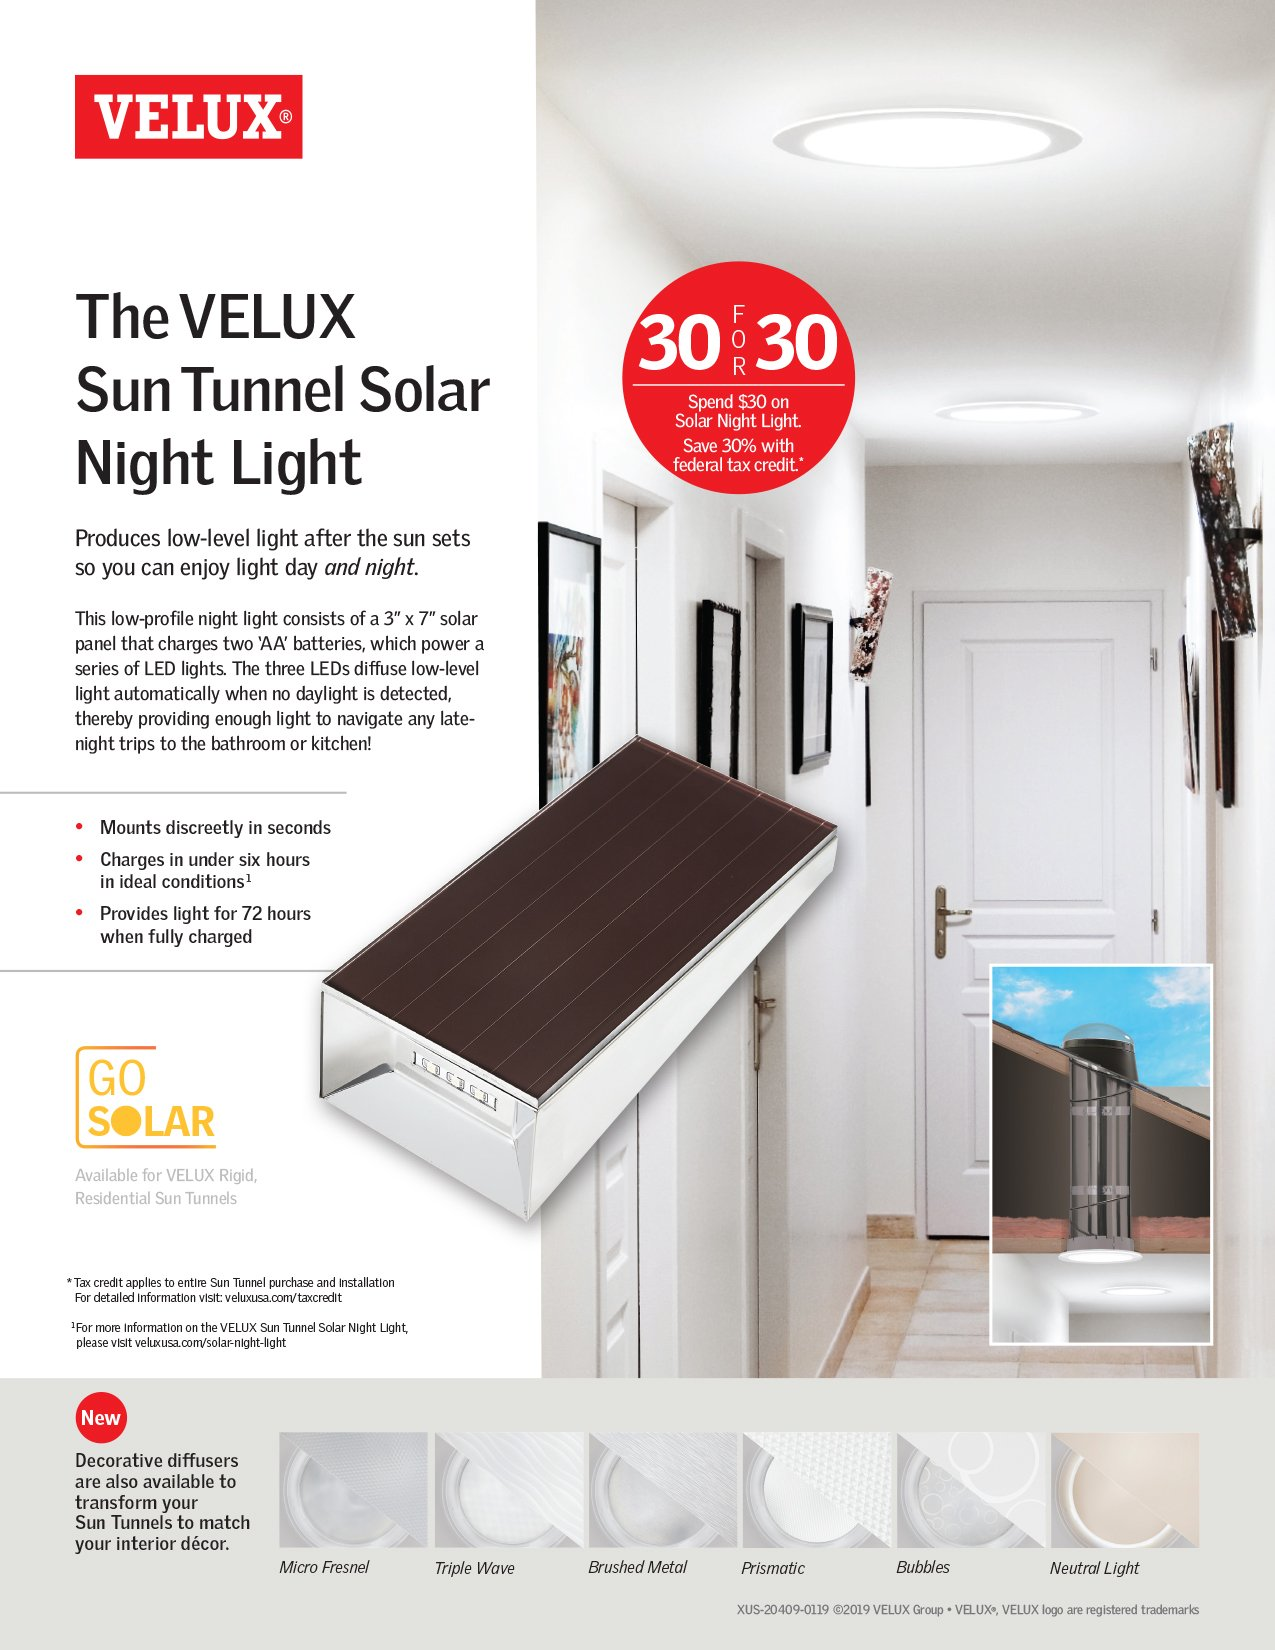 xus-20409-sun-tunnel-solar-night-light-flyer-0119-1